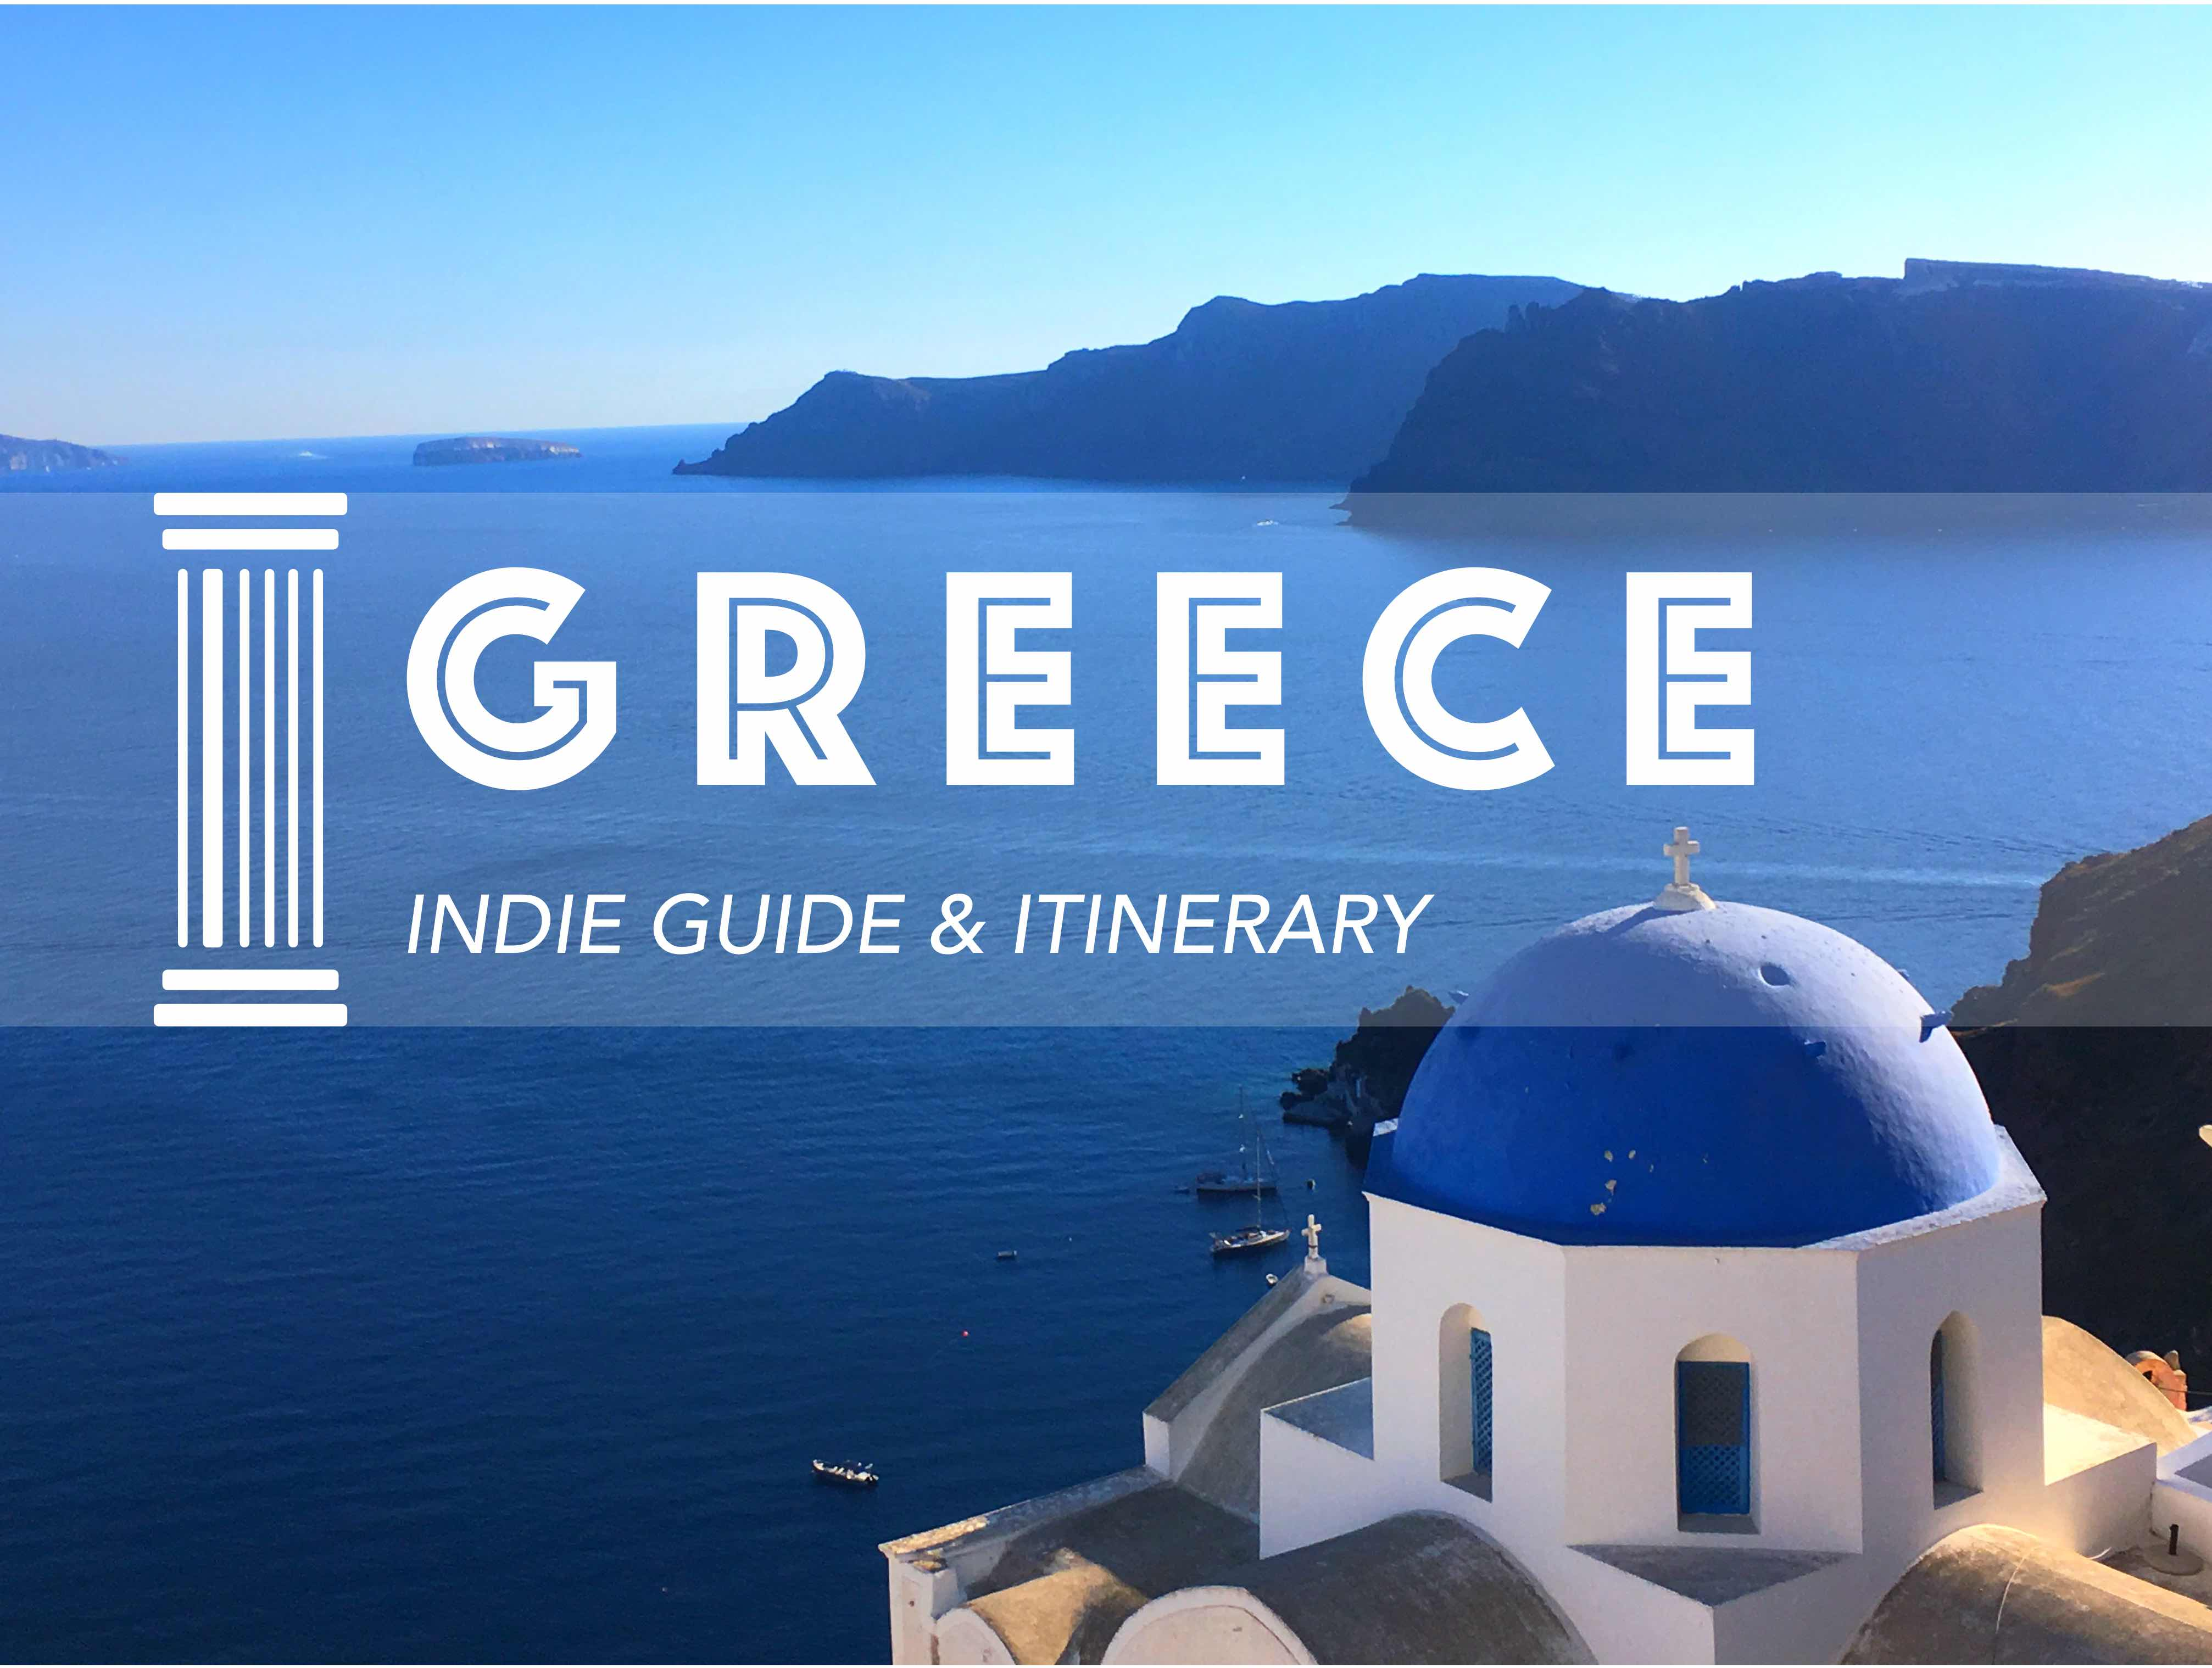 greece-itinerary-travel-guide-twitter.jpg